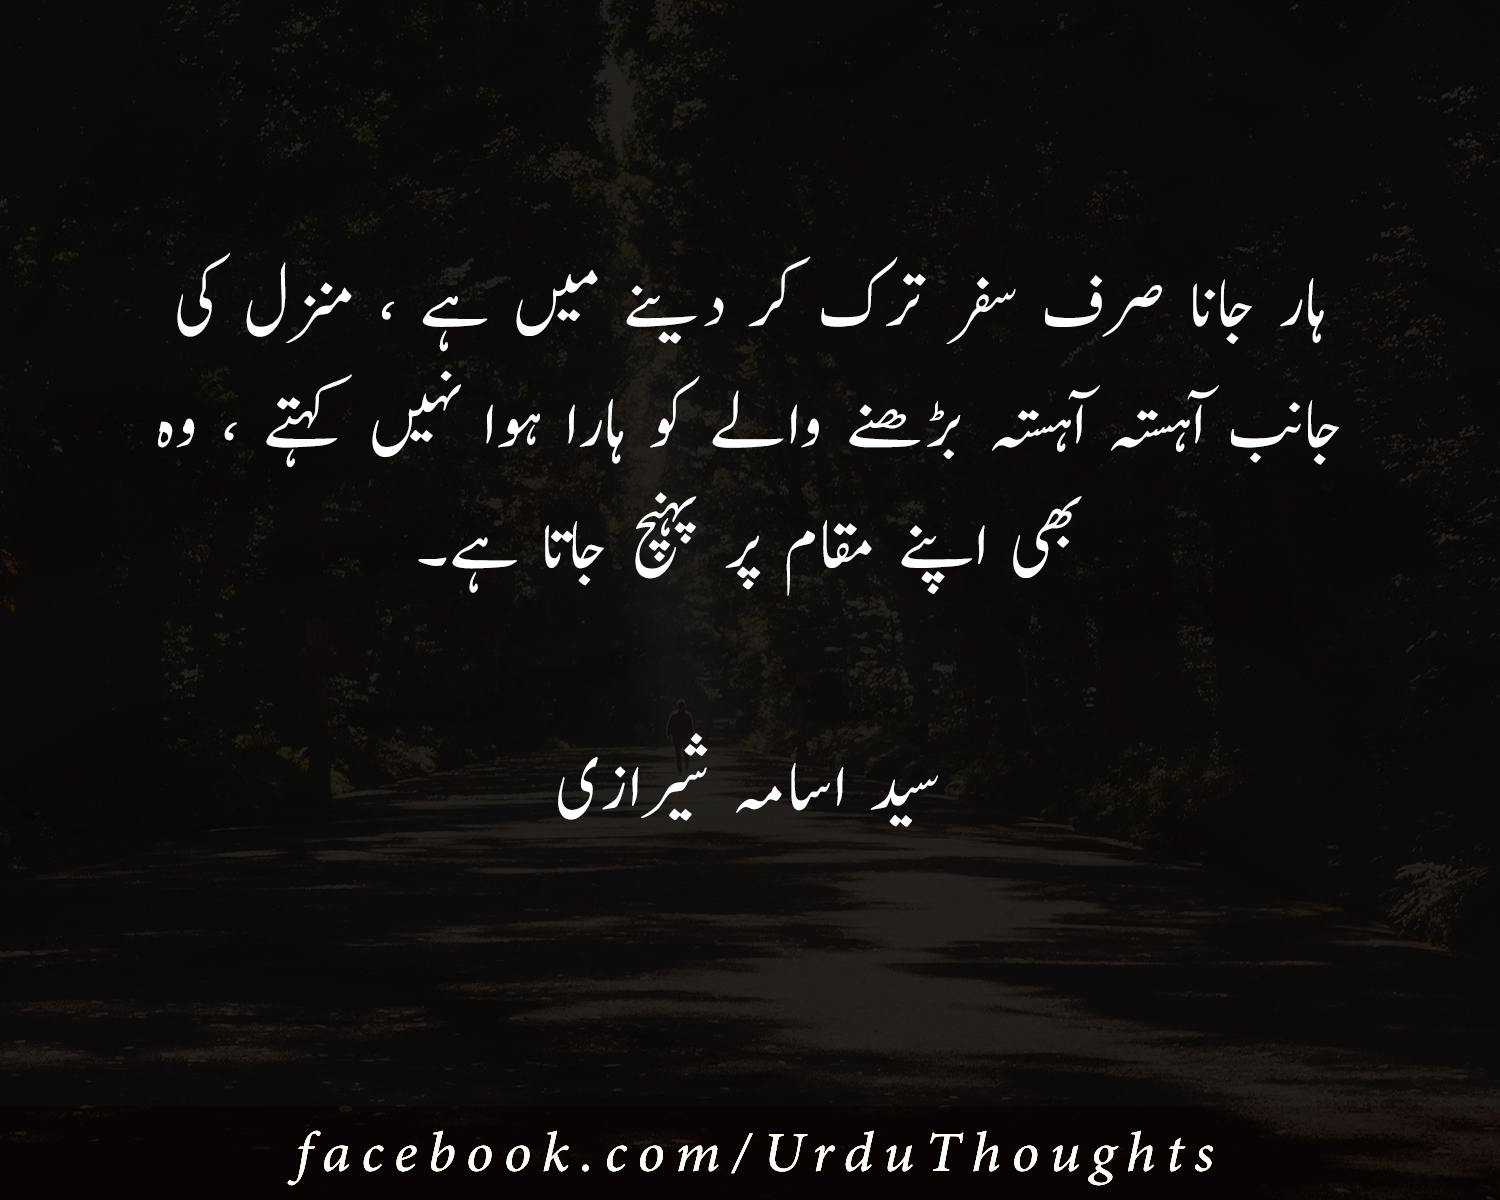 10 Best Quotes Sayings Images In Urdu Language Urdu Thoughts